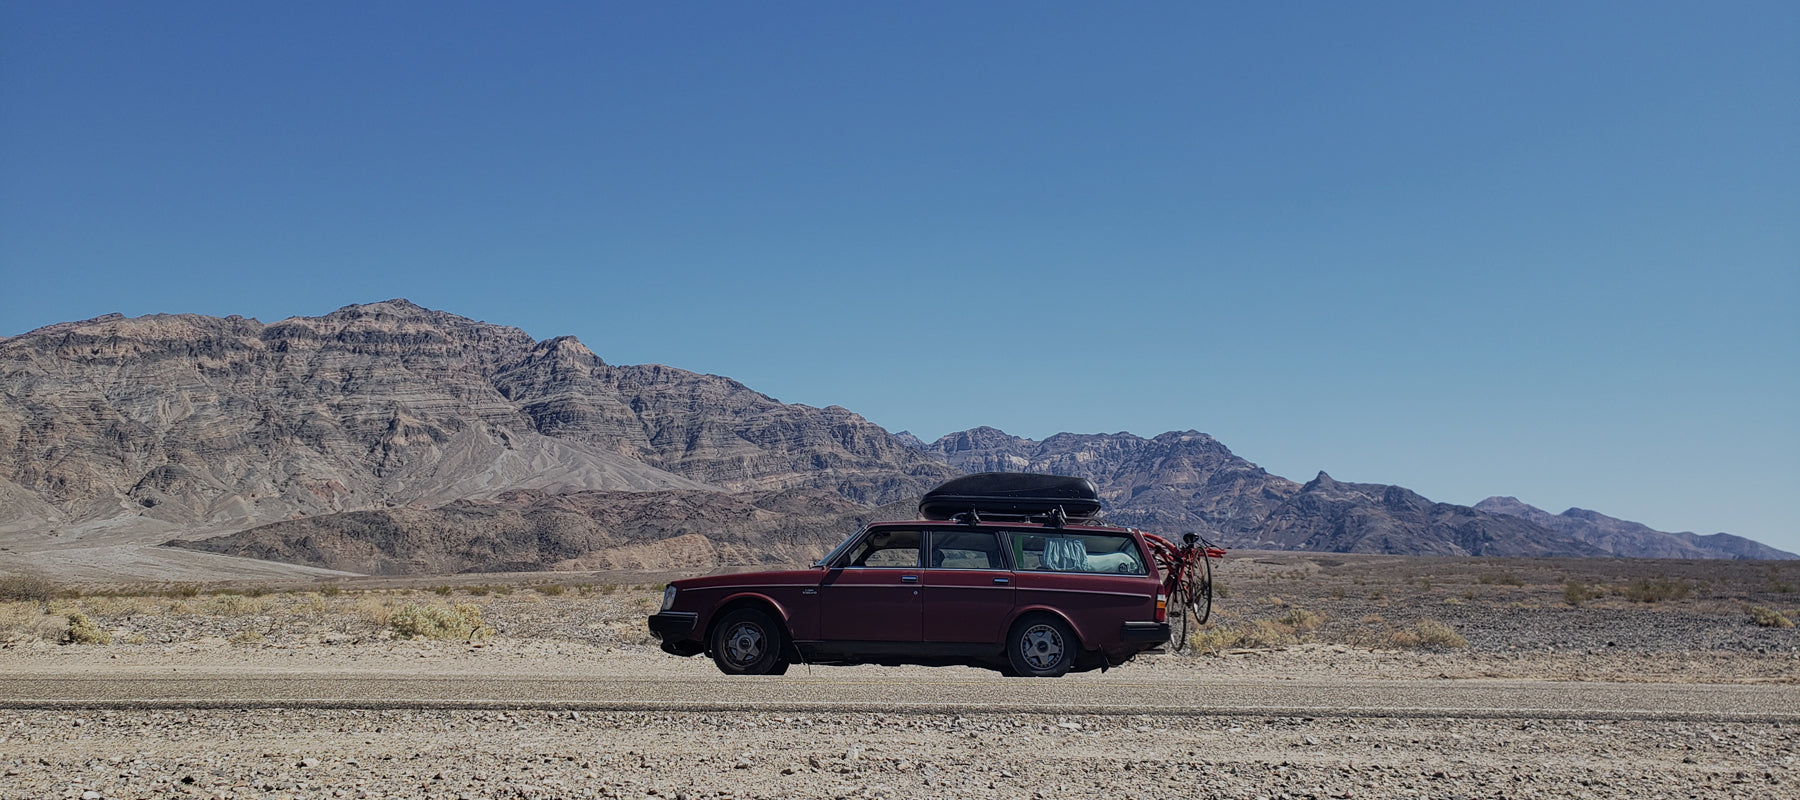 RIGS WE DIG: VOLVO STATION WAGON CAMPING